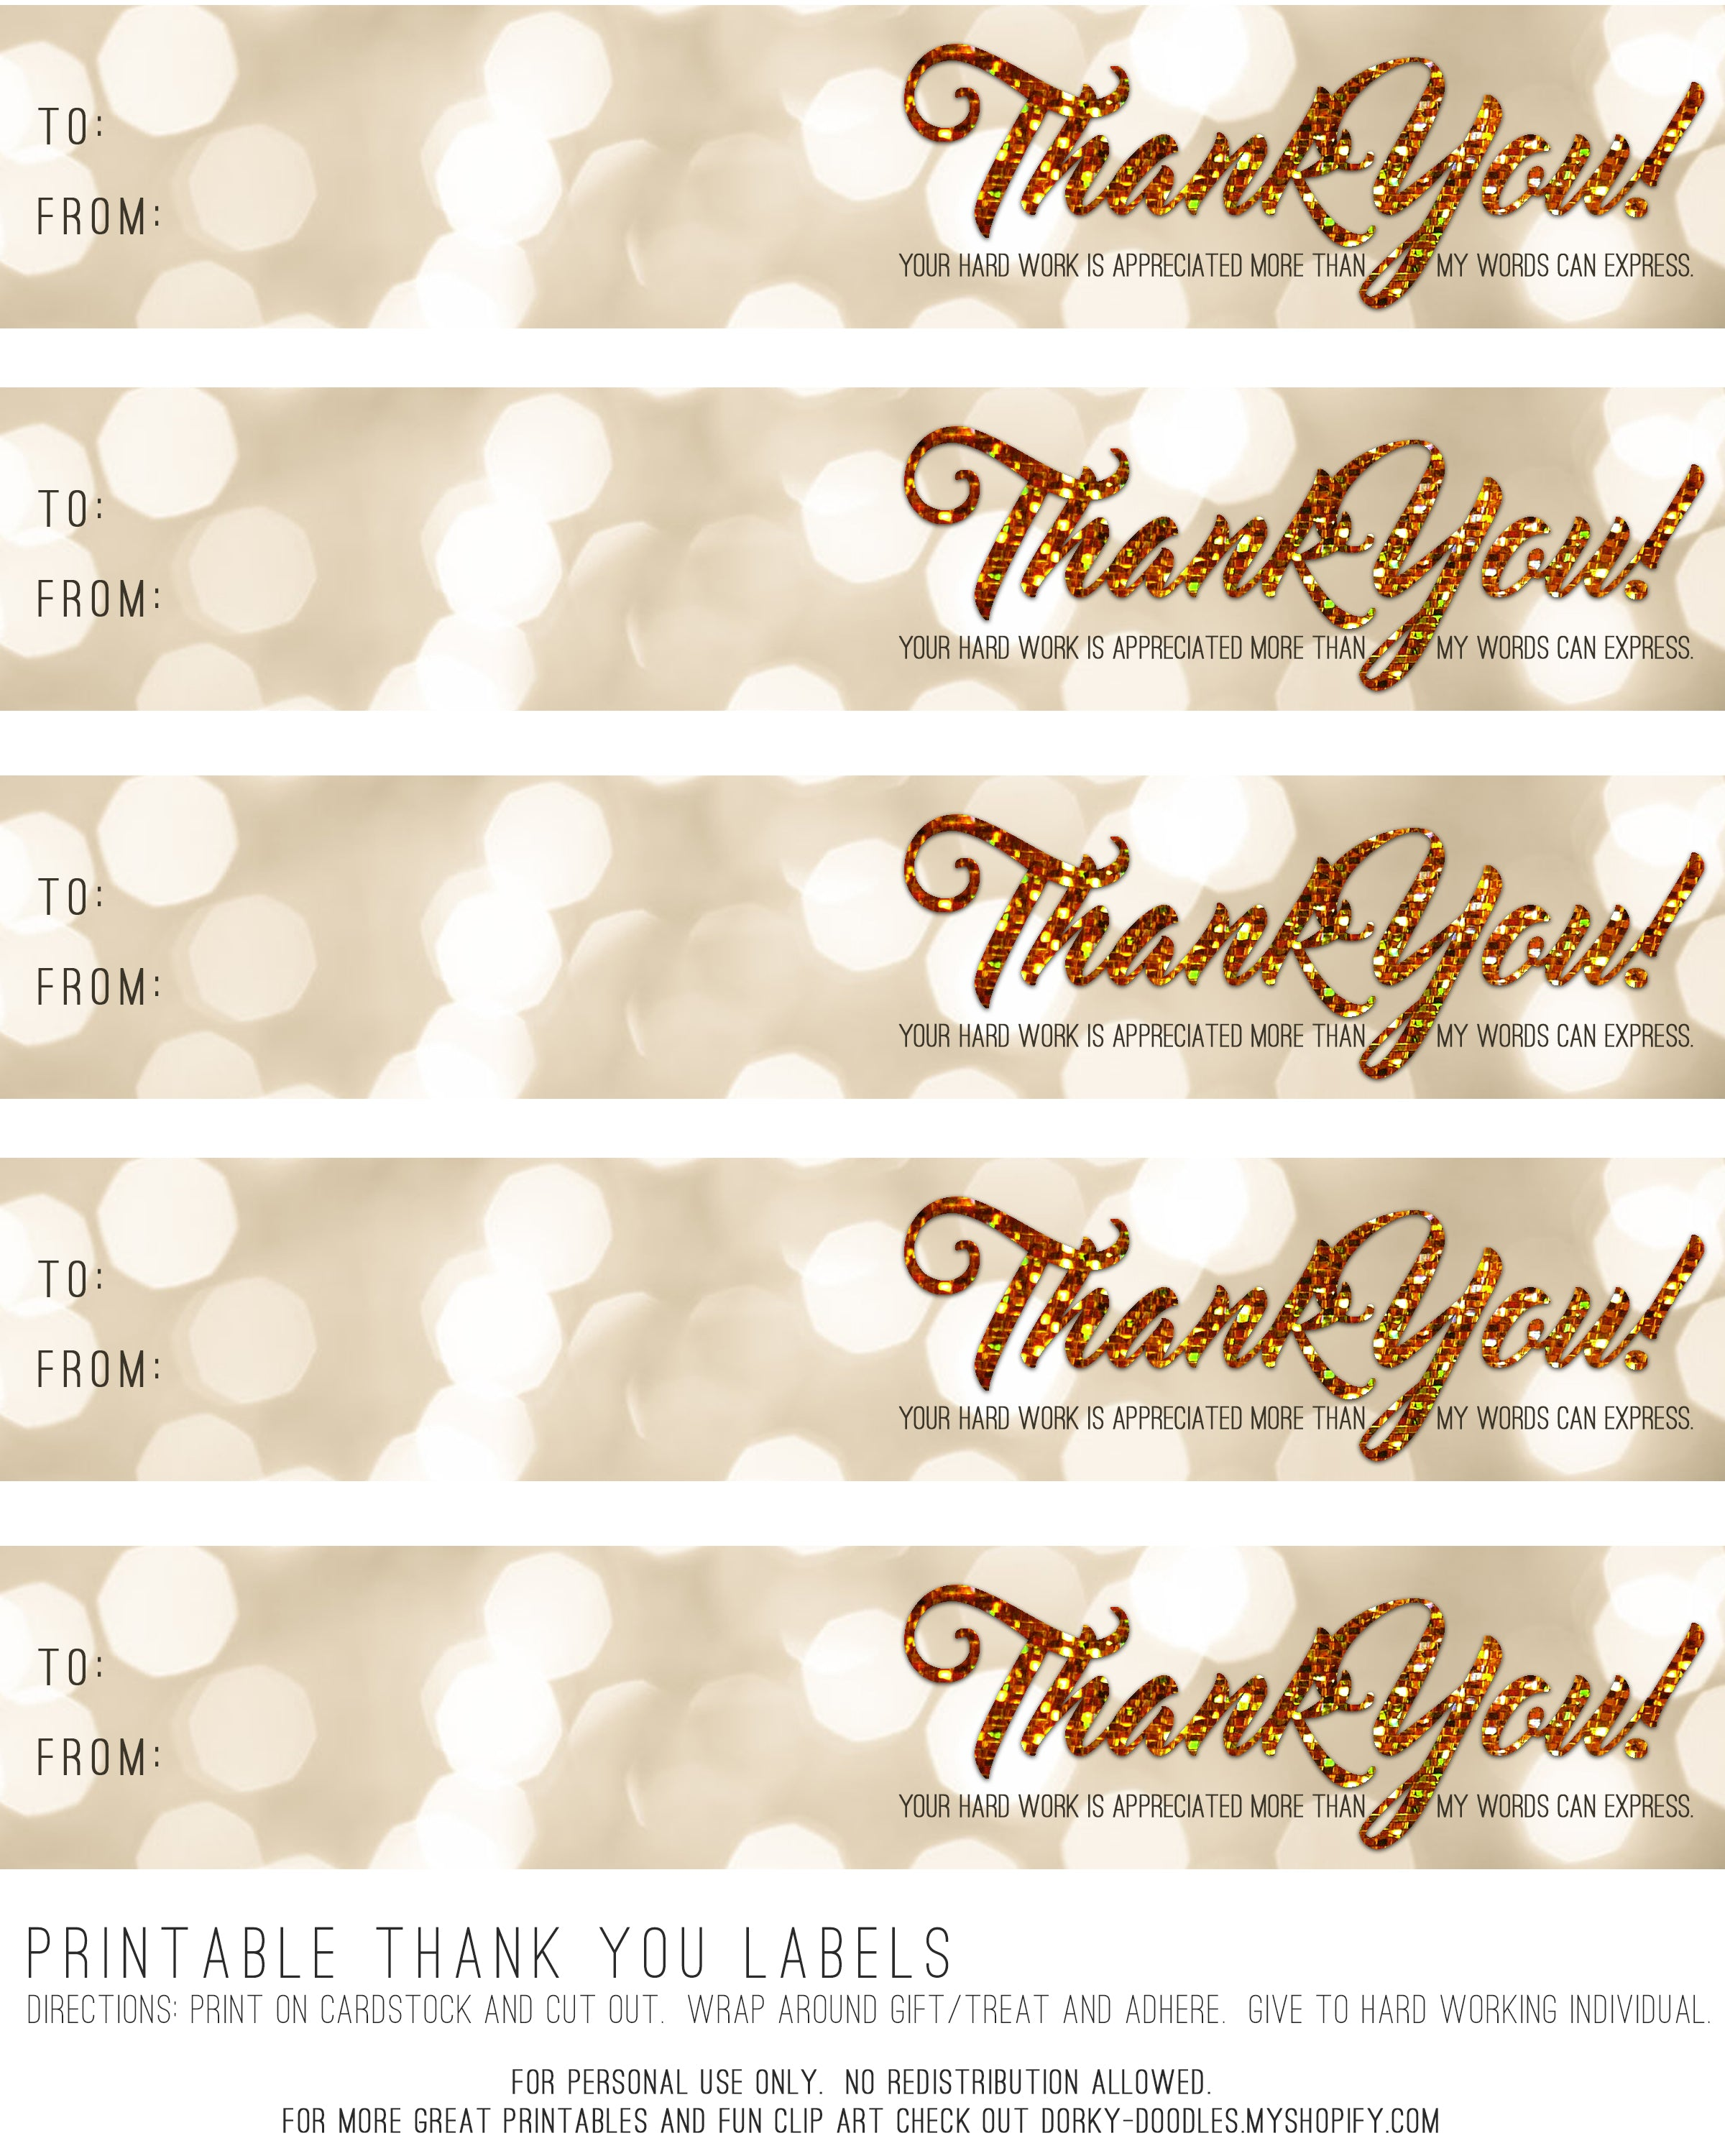 printable thank you labels dorky doodles just right click on the image below to save the high resolution file